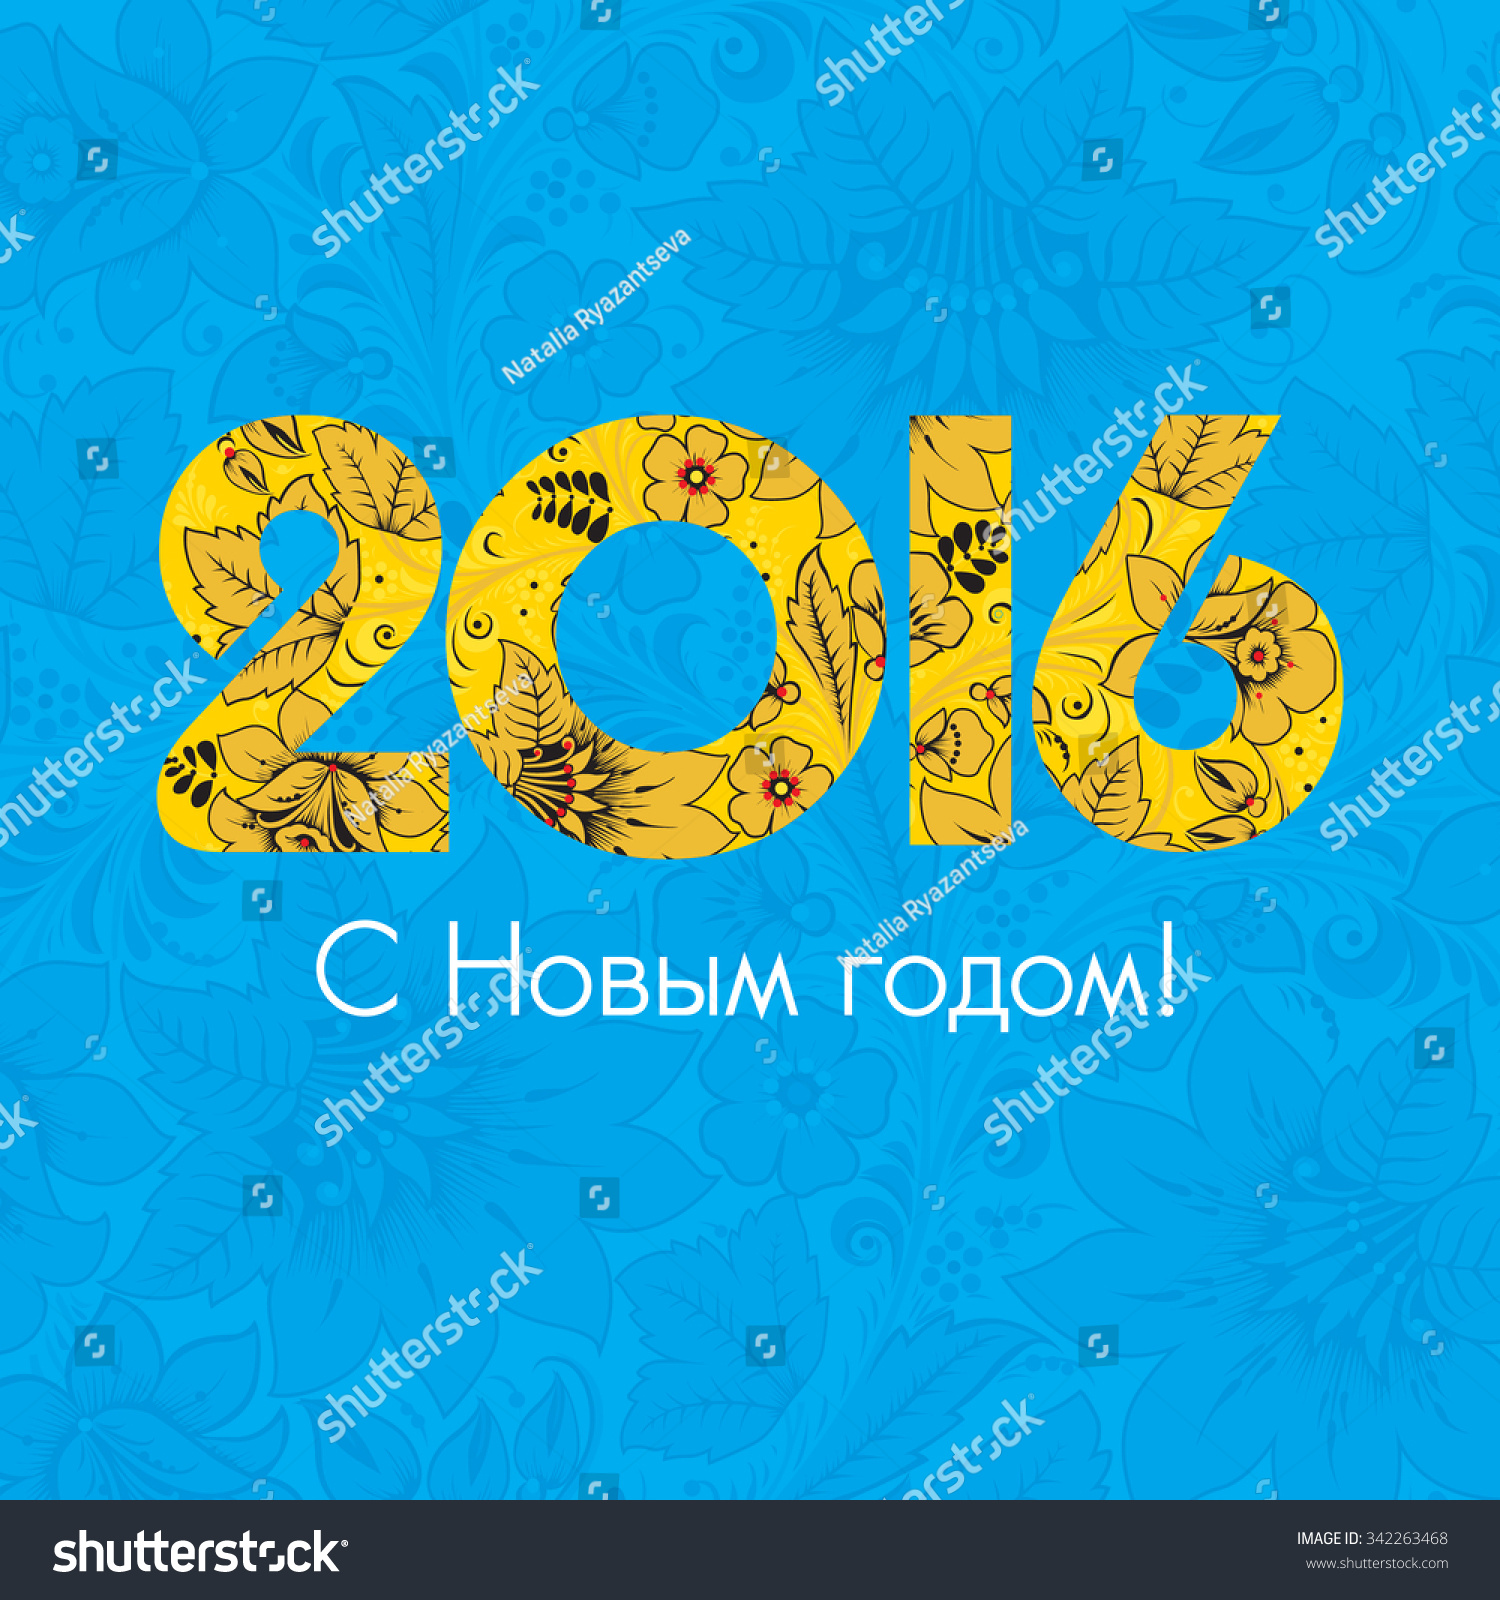 Russian Christmas And New Year Greetings New Yearfo 2019